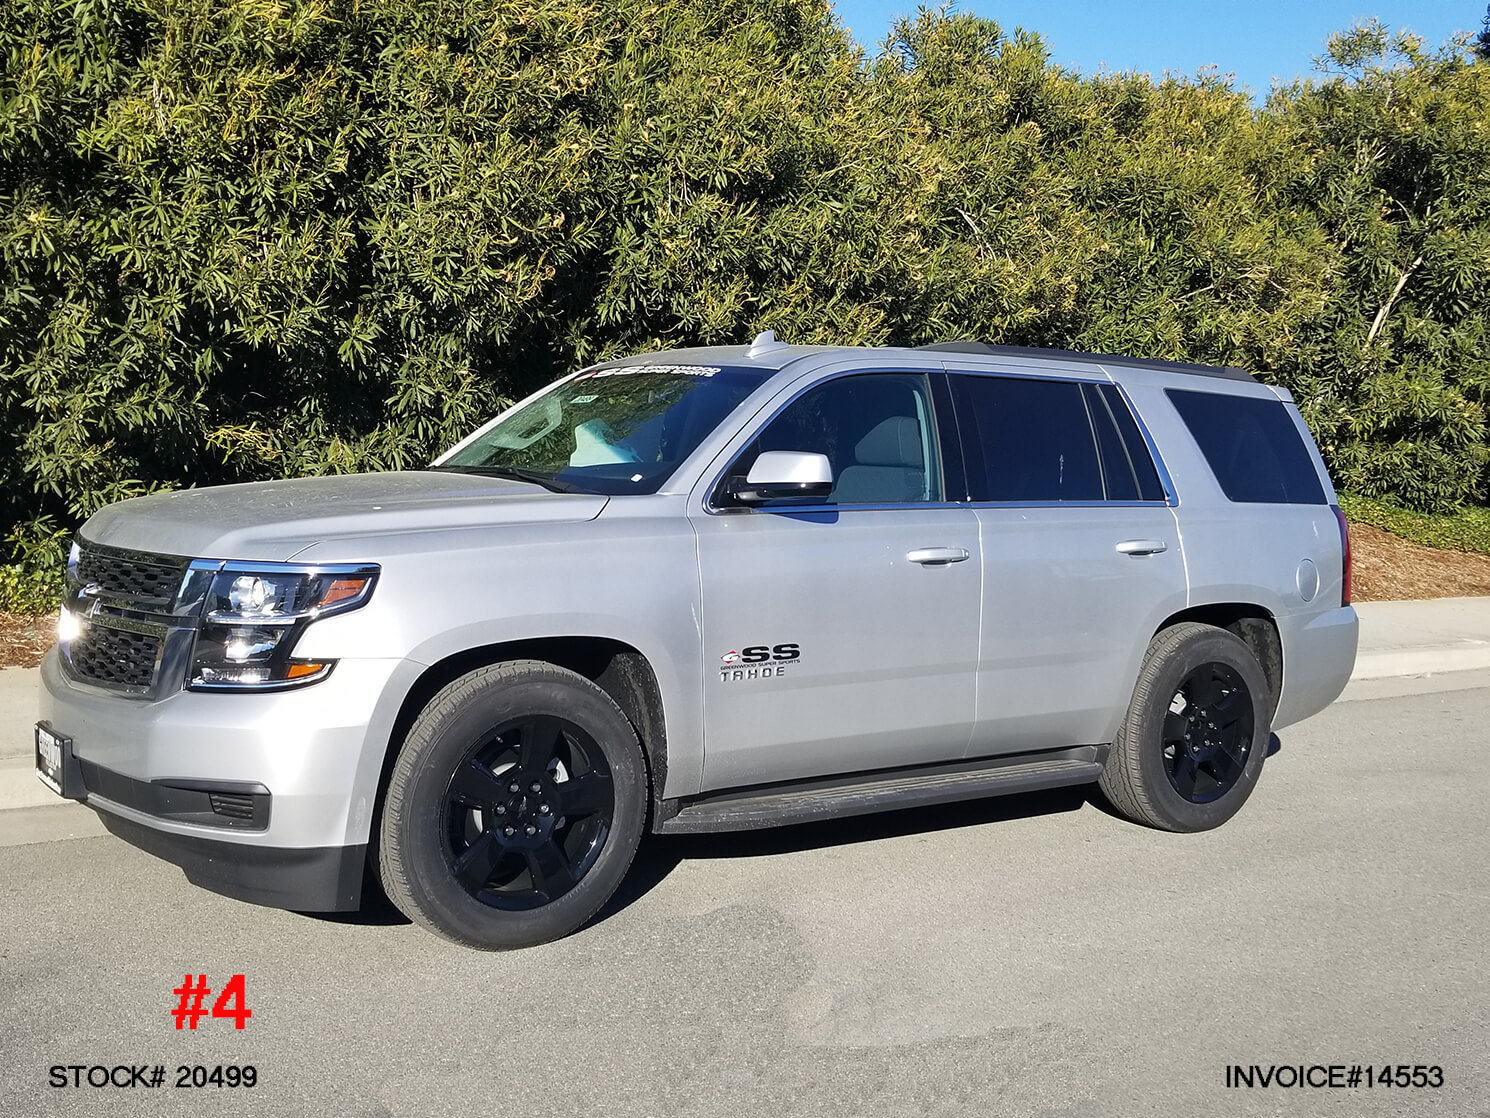 2018 CHEVY TAHOE #20499 | Truck and SUV Parts Warehouse